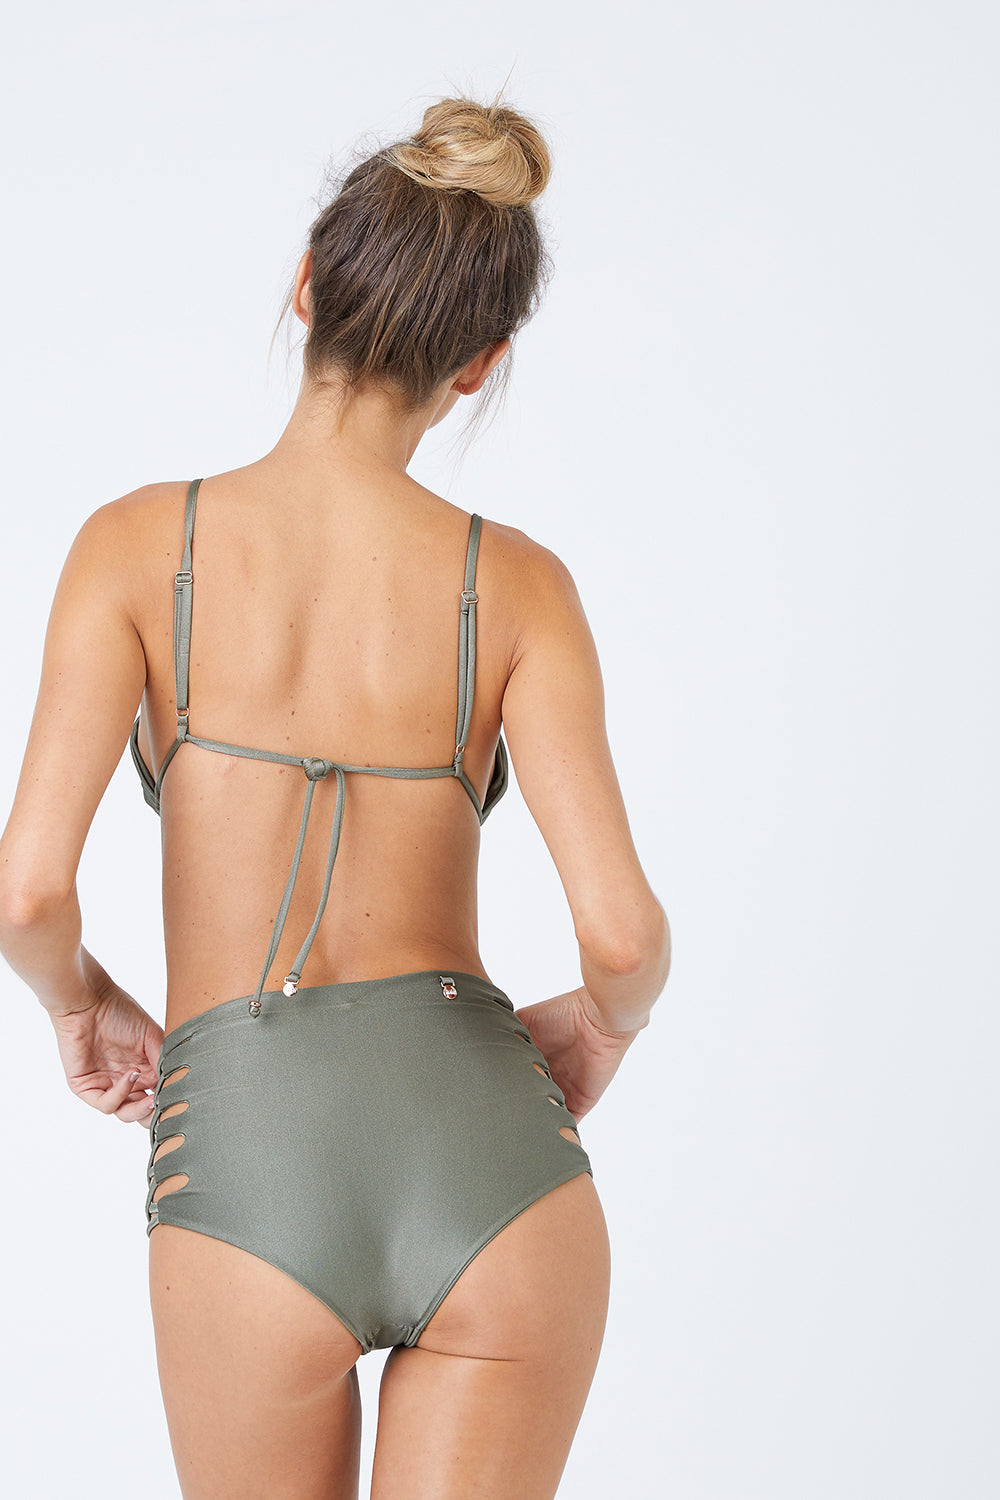 Lace Up High Waist Bikini Bottom - Sparkly Green